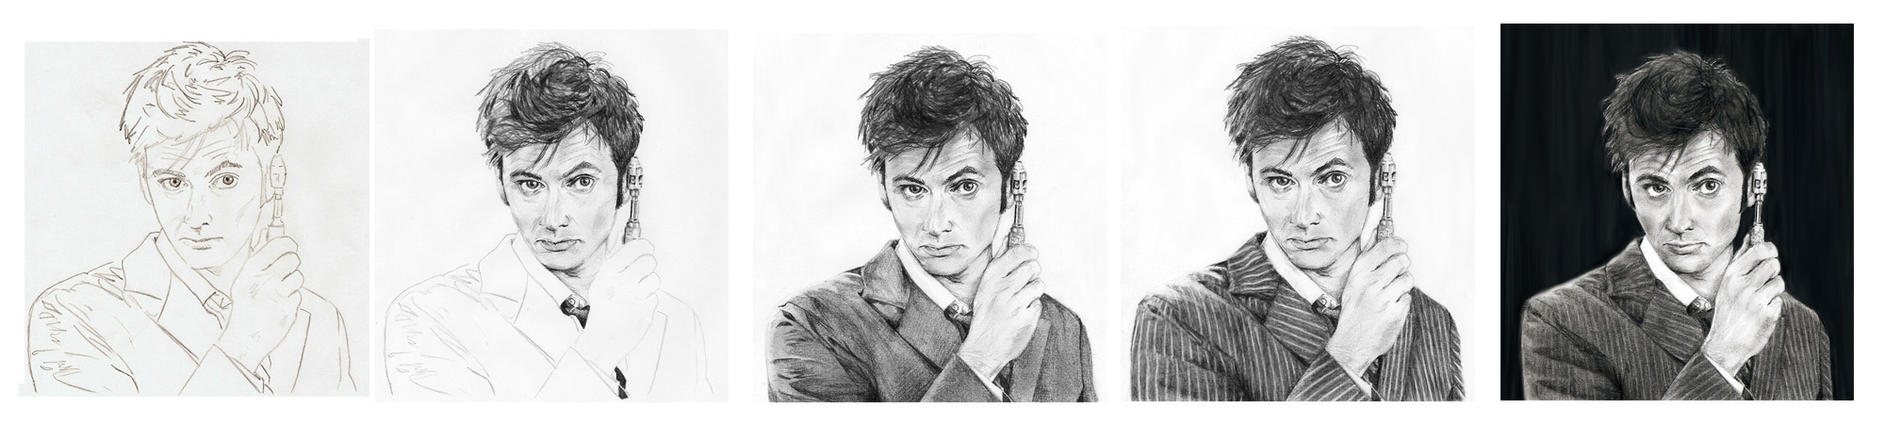 Step by Step with Tennant by Sterin